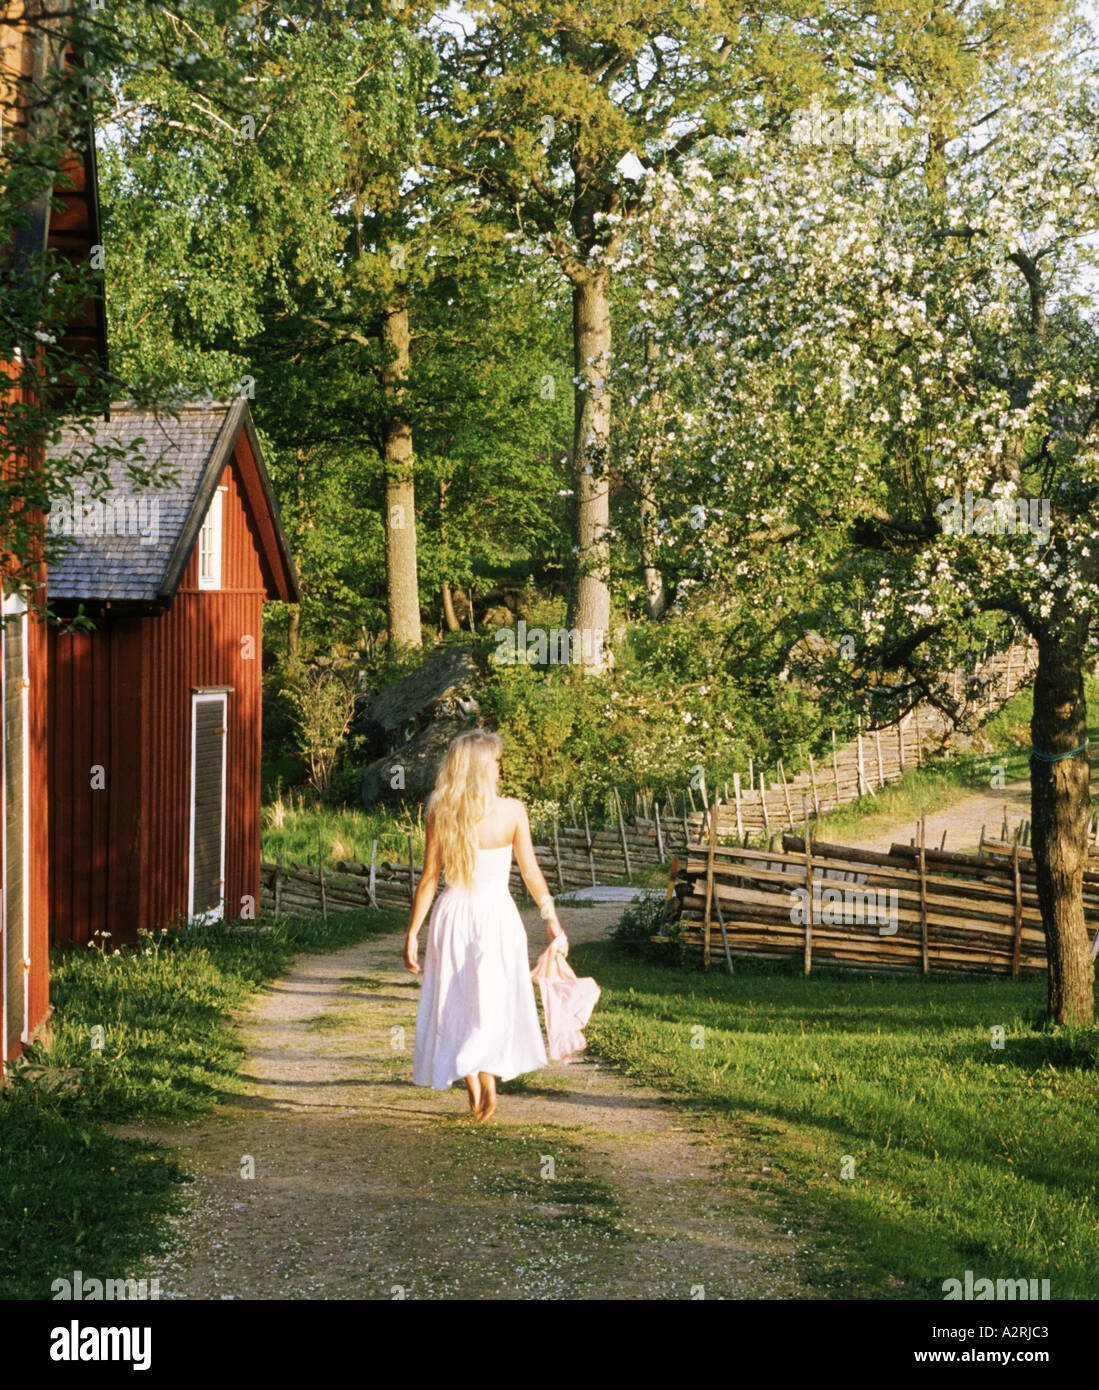 Blond woman in white dress on farm pathway in Småland, Sweden - Stock Image